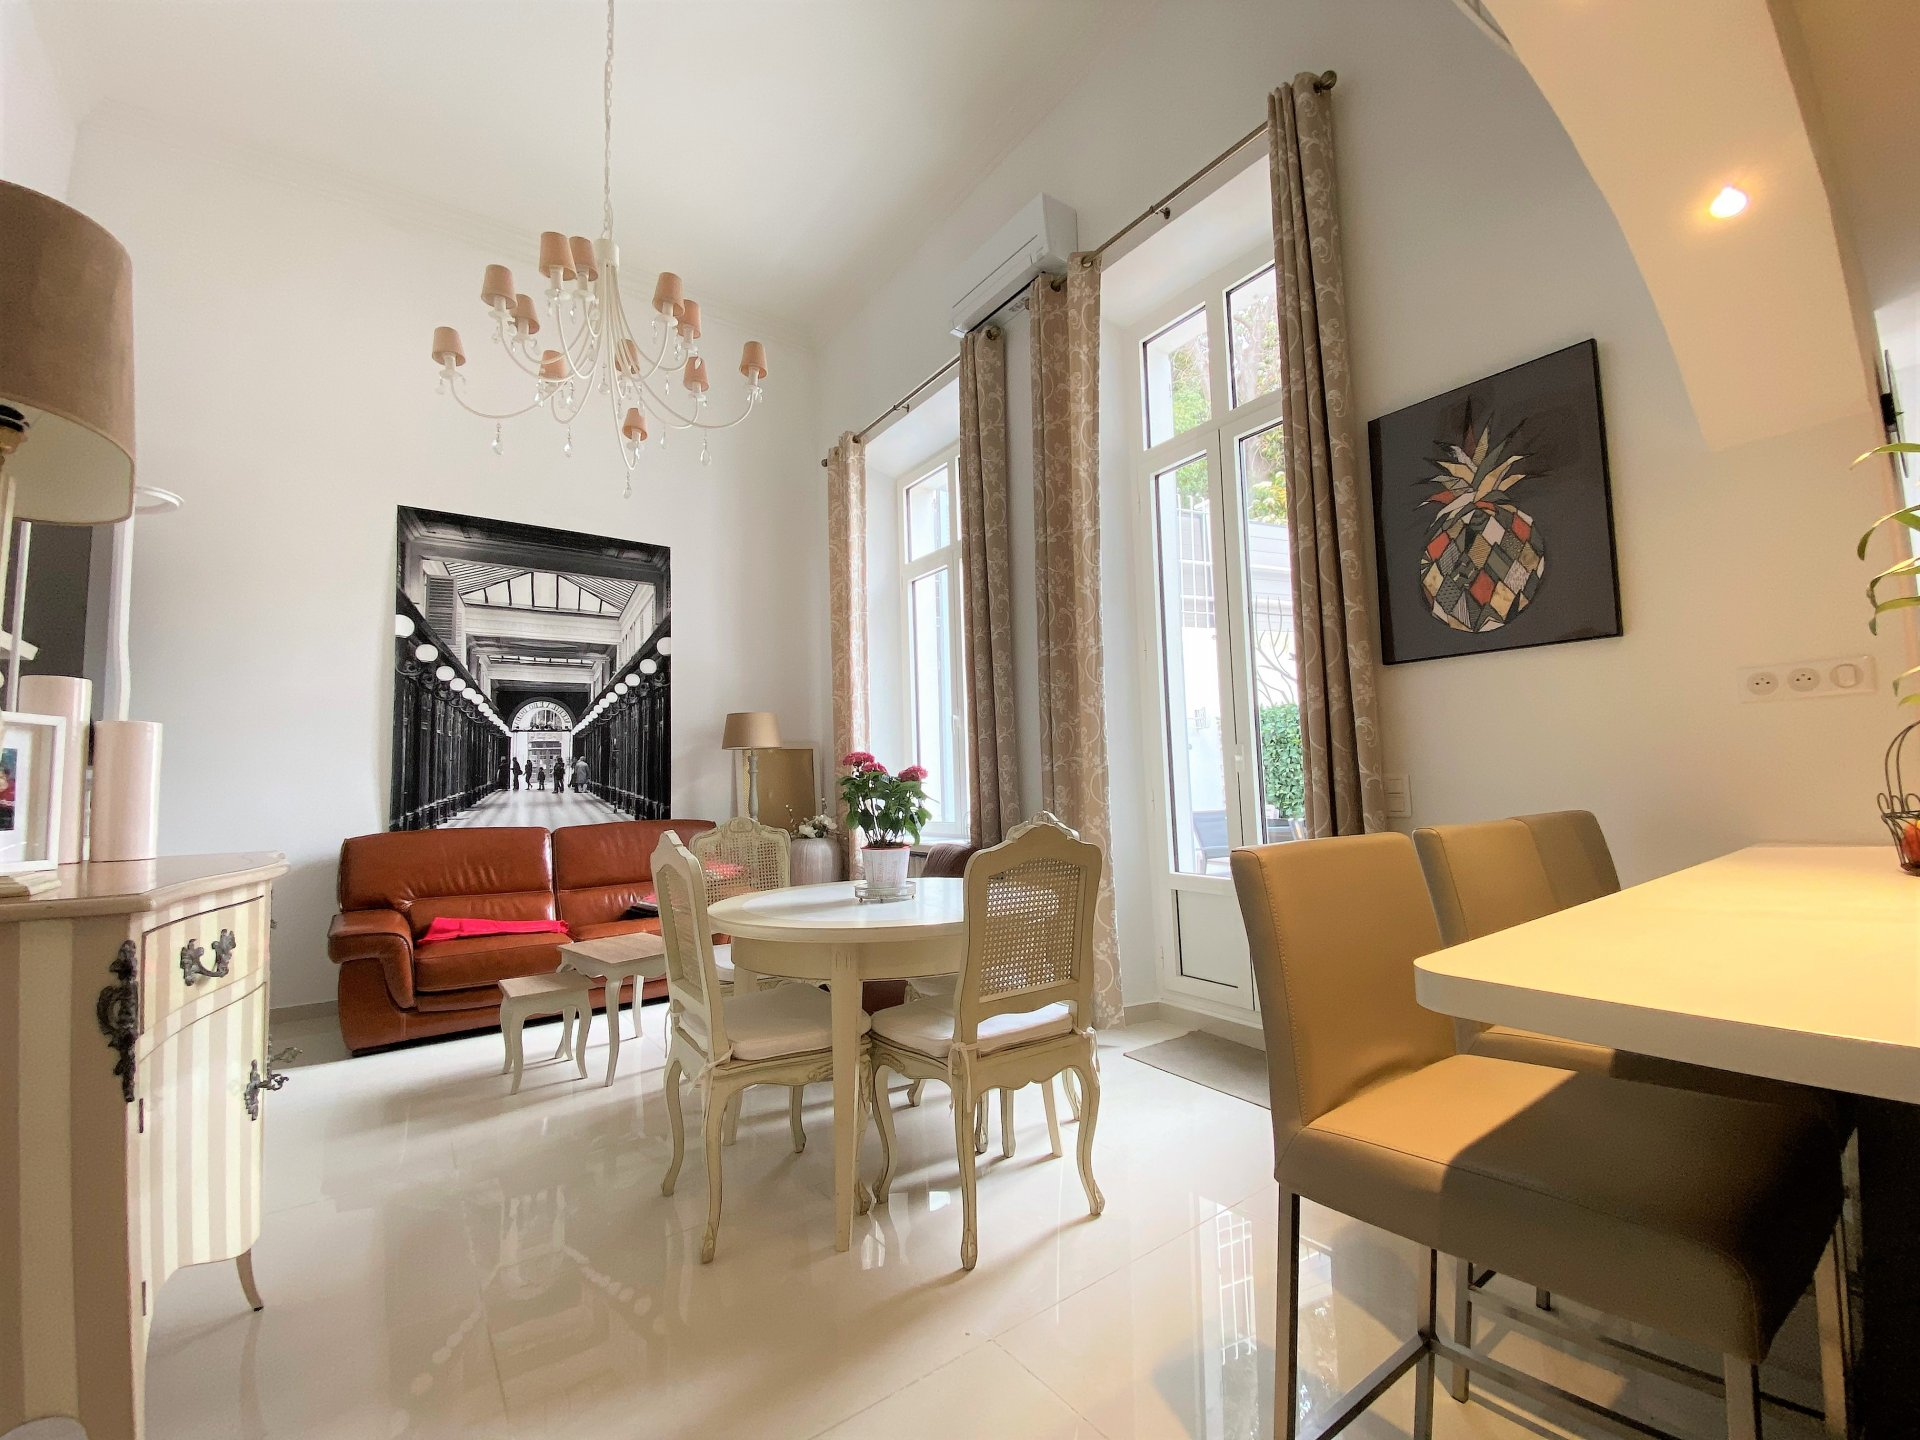 MAGNIFICENT 3 ROOMS IN RDJ IN RESIDENCE BOURGEOISE